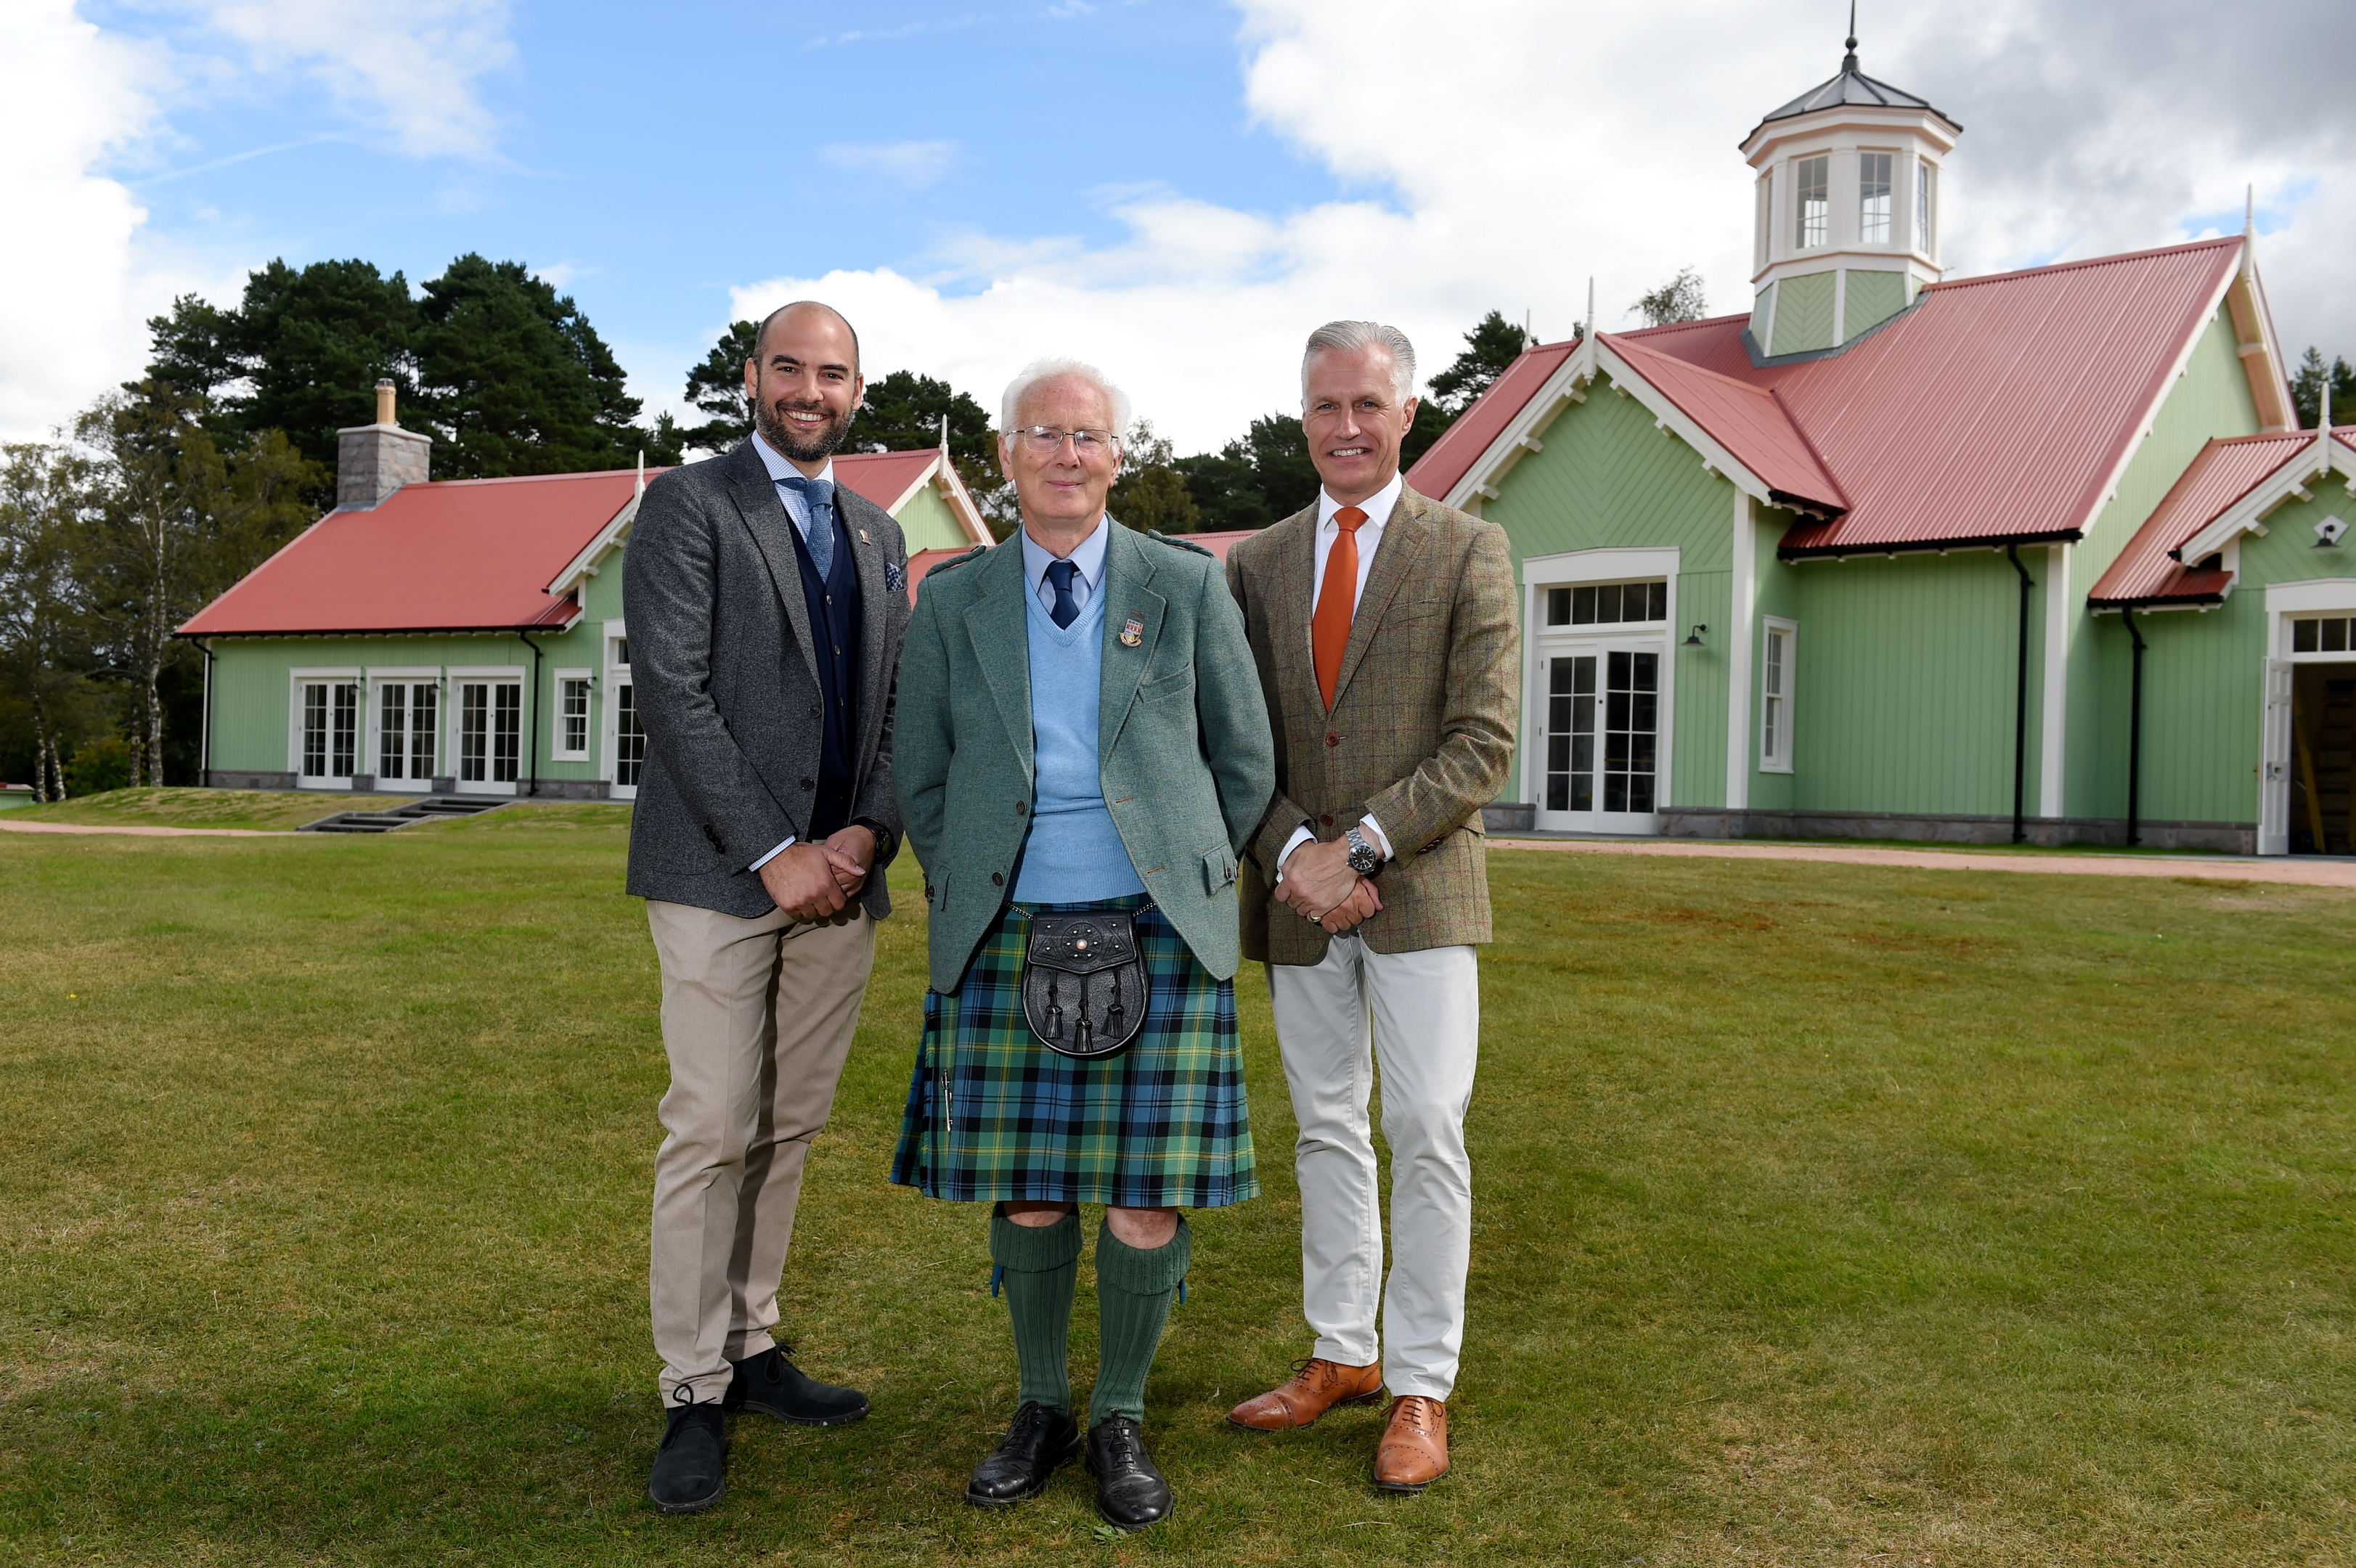 The Duke of Rothesay Highland Games Pavilion will open on Saturday.  Picture of (L-R) Michael Harris (architectural designer), David Geddes (Braemar Royal Highland Society president) and Robert Lovie (Prince's Foundation director of outreach). (Picture by Kenny Elrick)